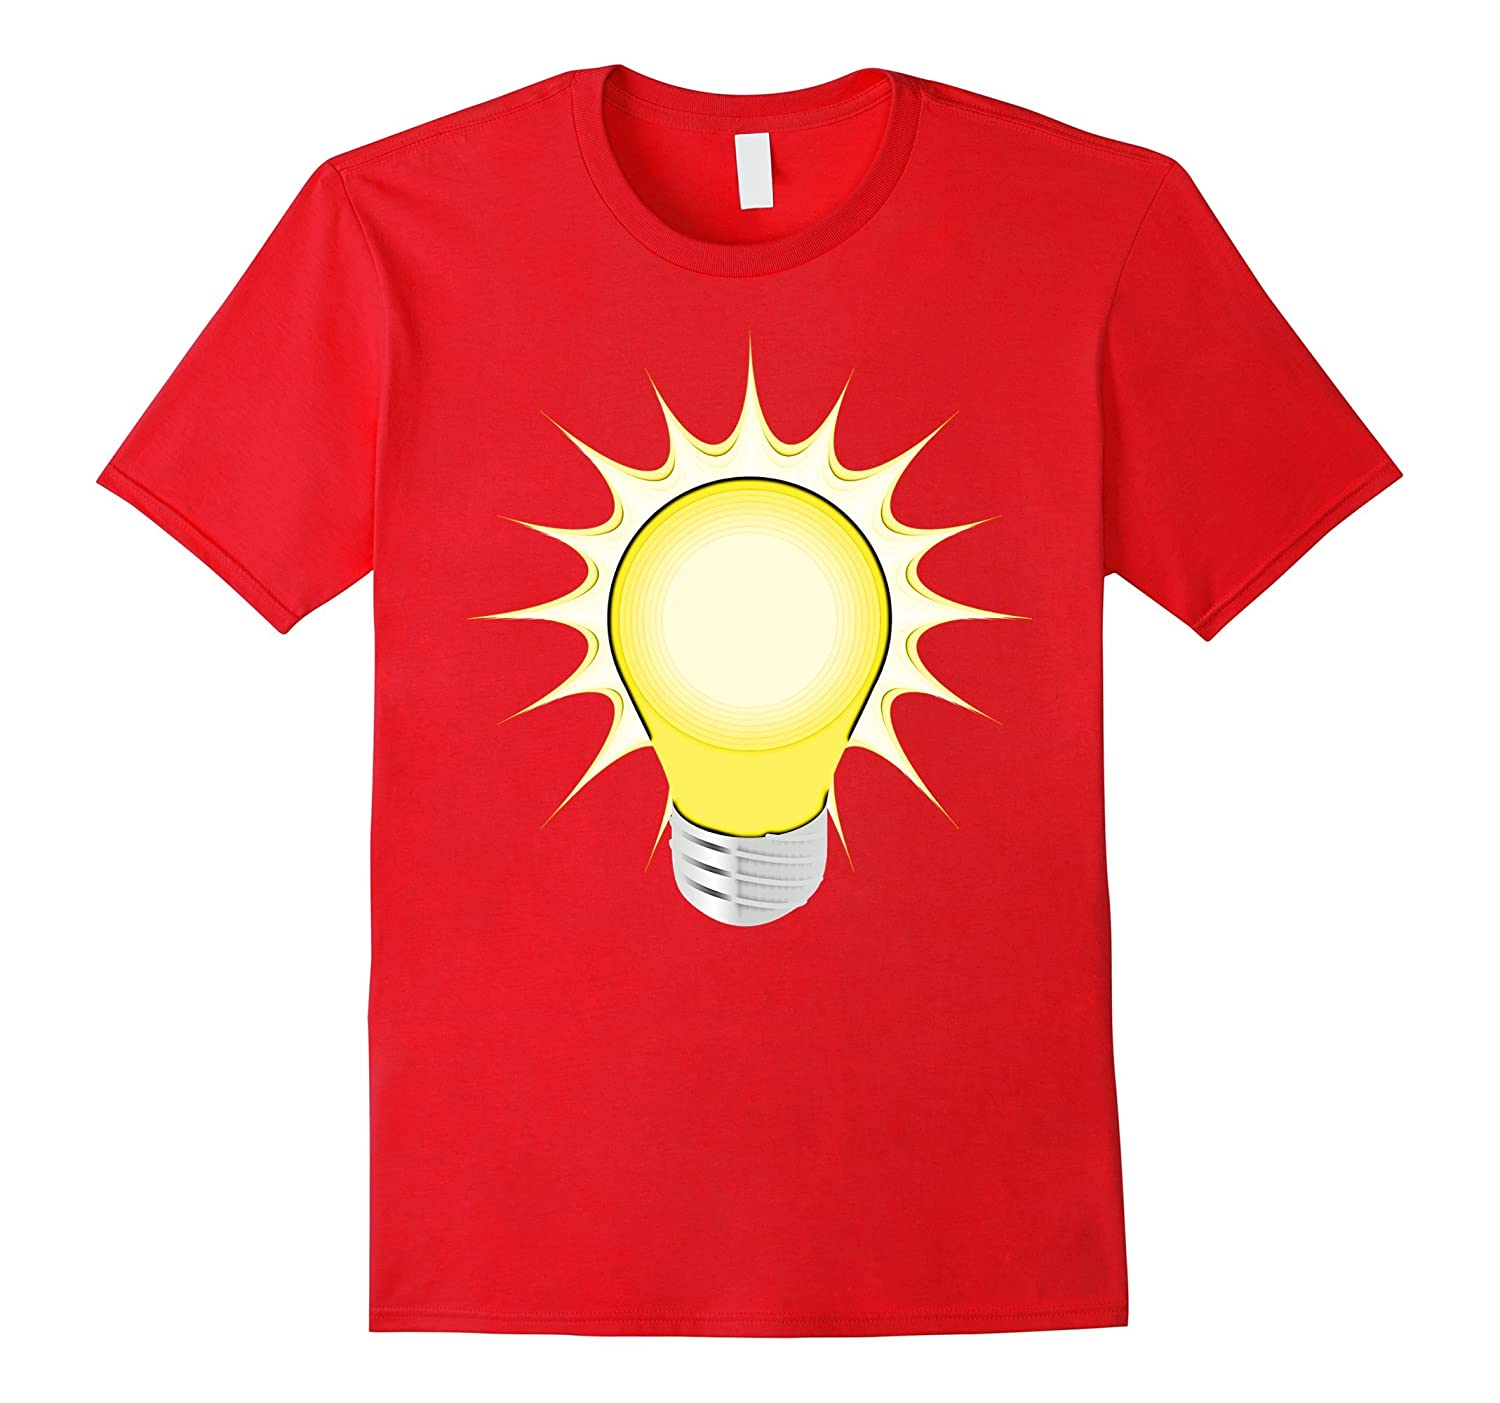 Lightbulb T-Shirt - Light Bulb Idea Tee Shirt-TD